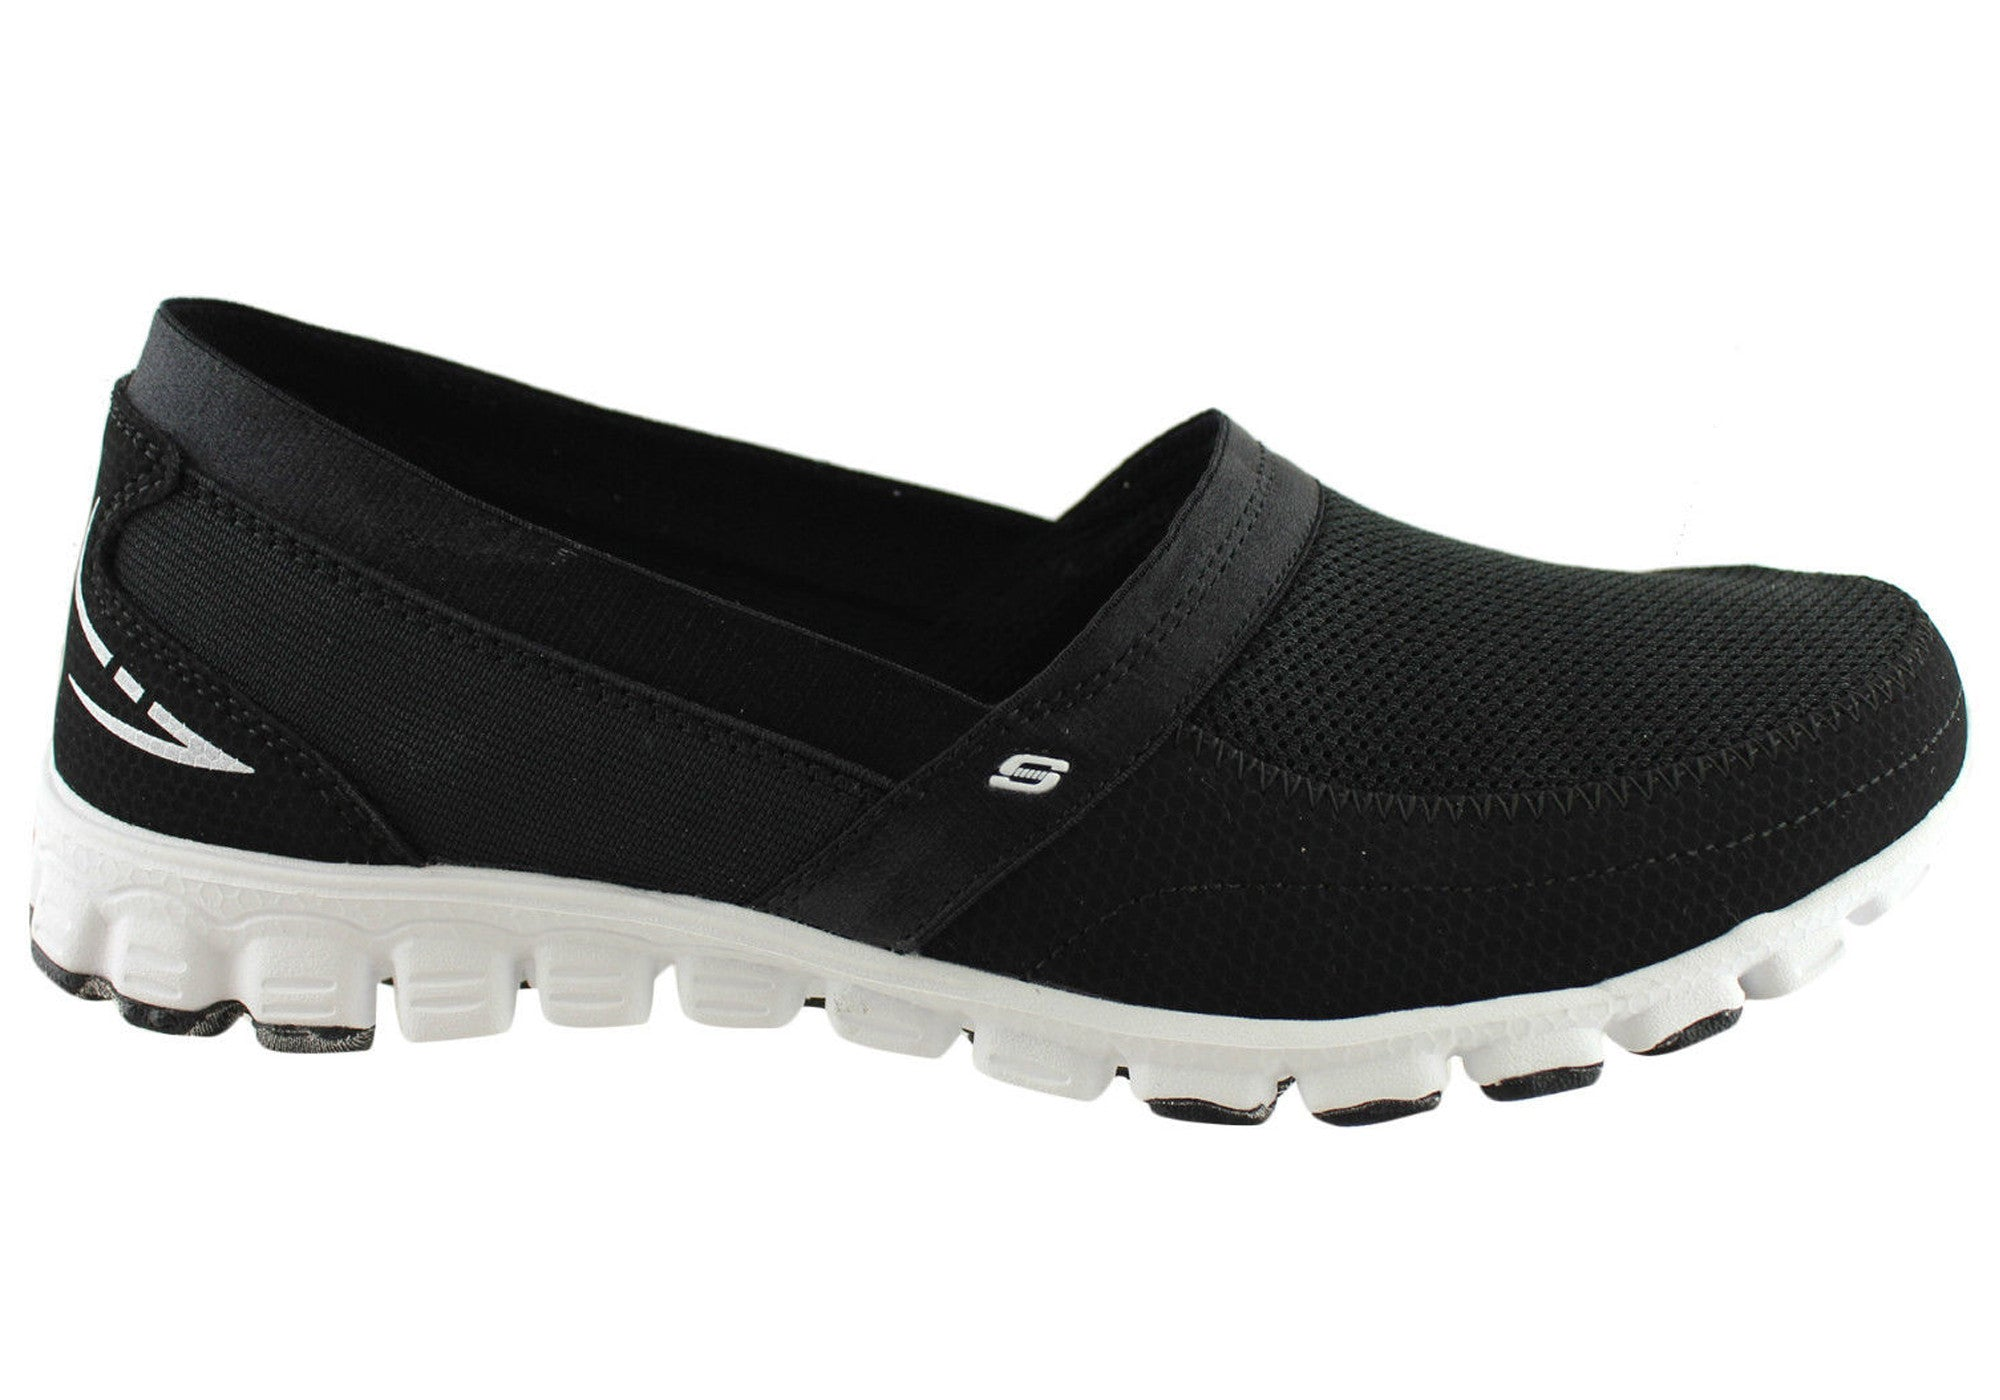 7749f0fc3ba2 Home Skechers Ez Flex Take It Easy Womens Memory Foam Shoes. Black  ...